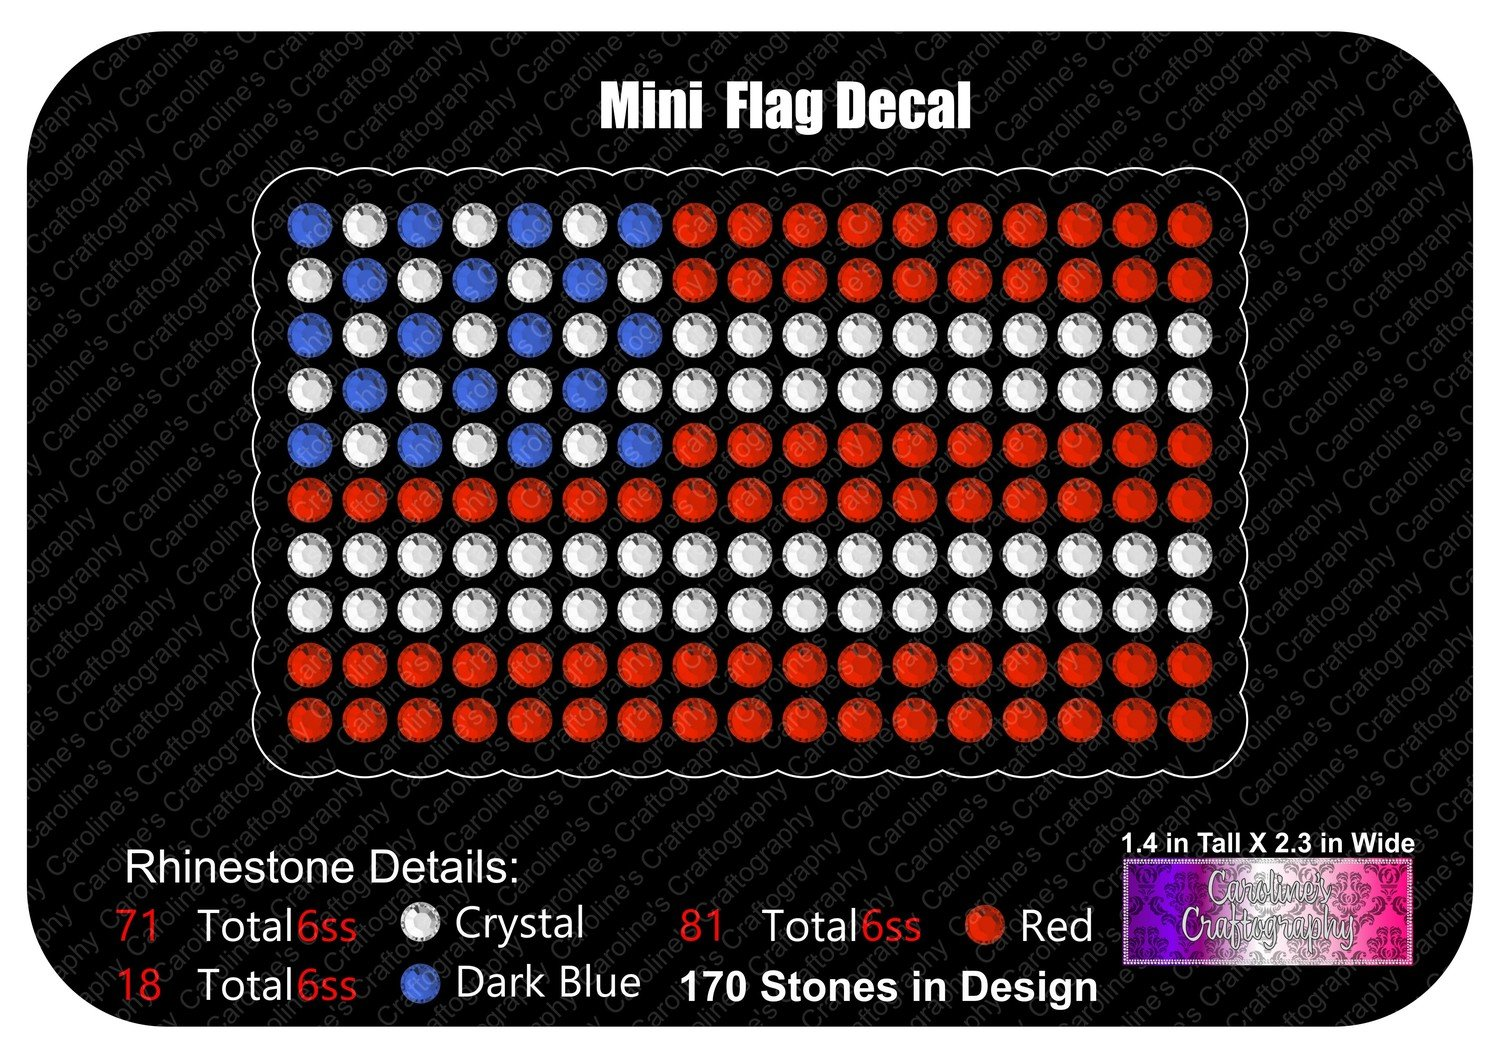 Mini Flag Decal